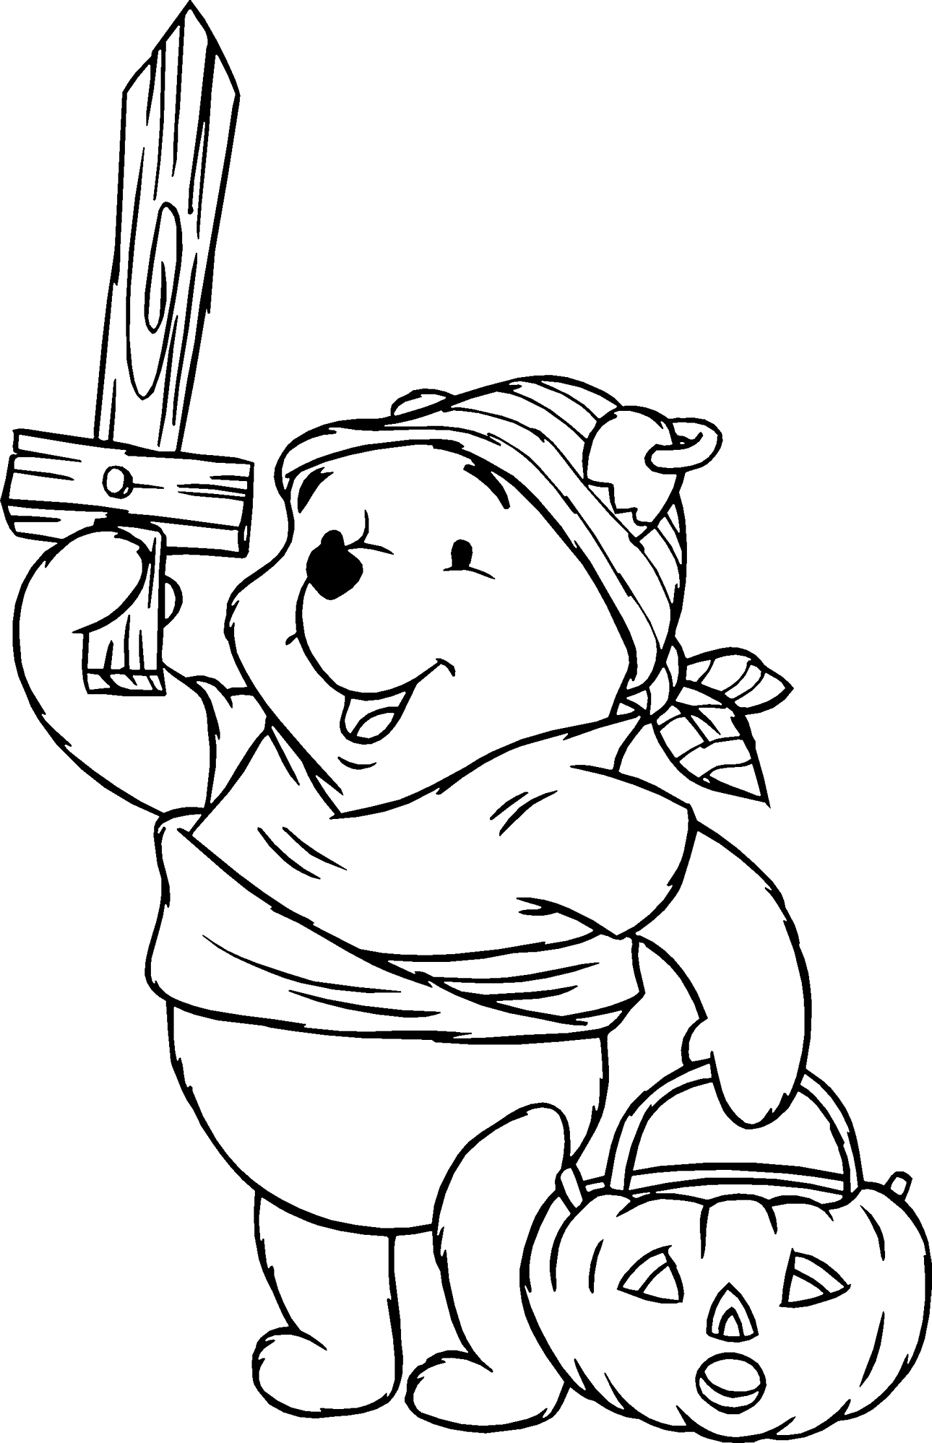 27 Free Printable Halloween Coloring Pages For Kids Print Them All Disney Coloring Pages Free Halloween Coloring Pages Halloween Coloring Pages